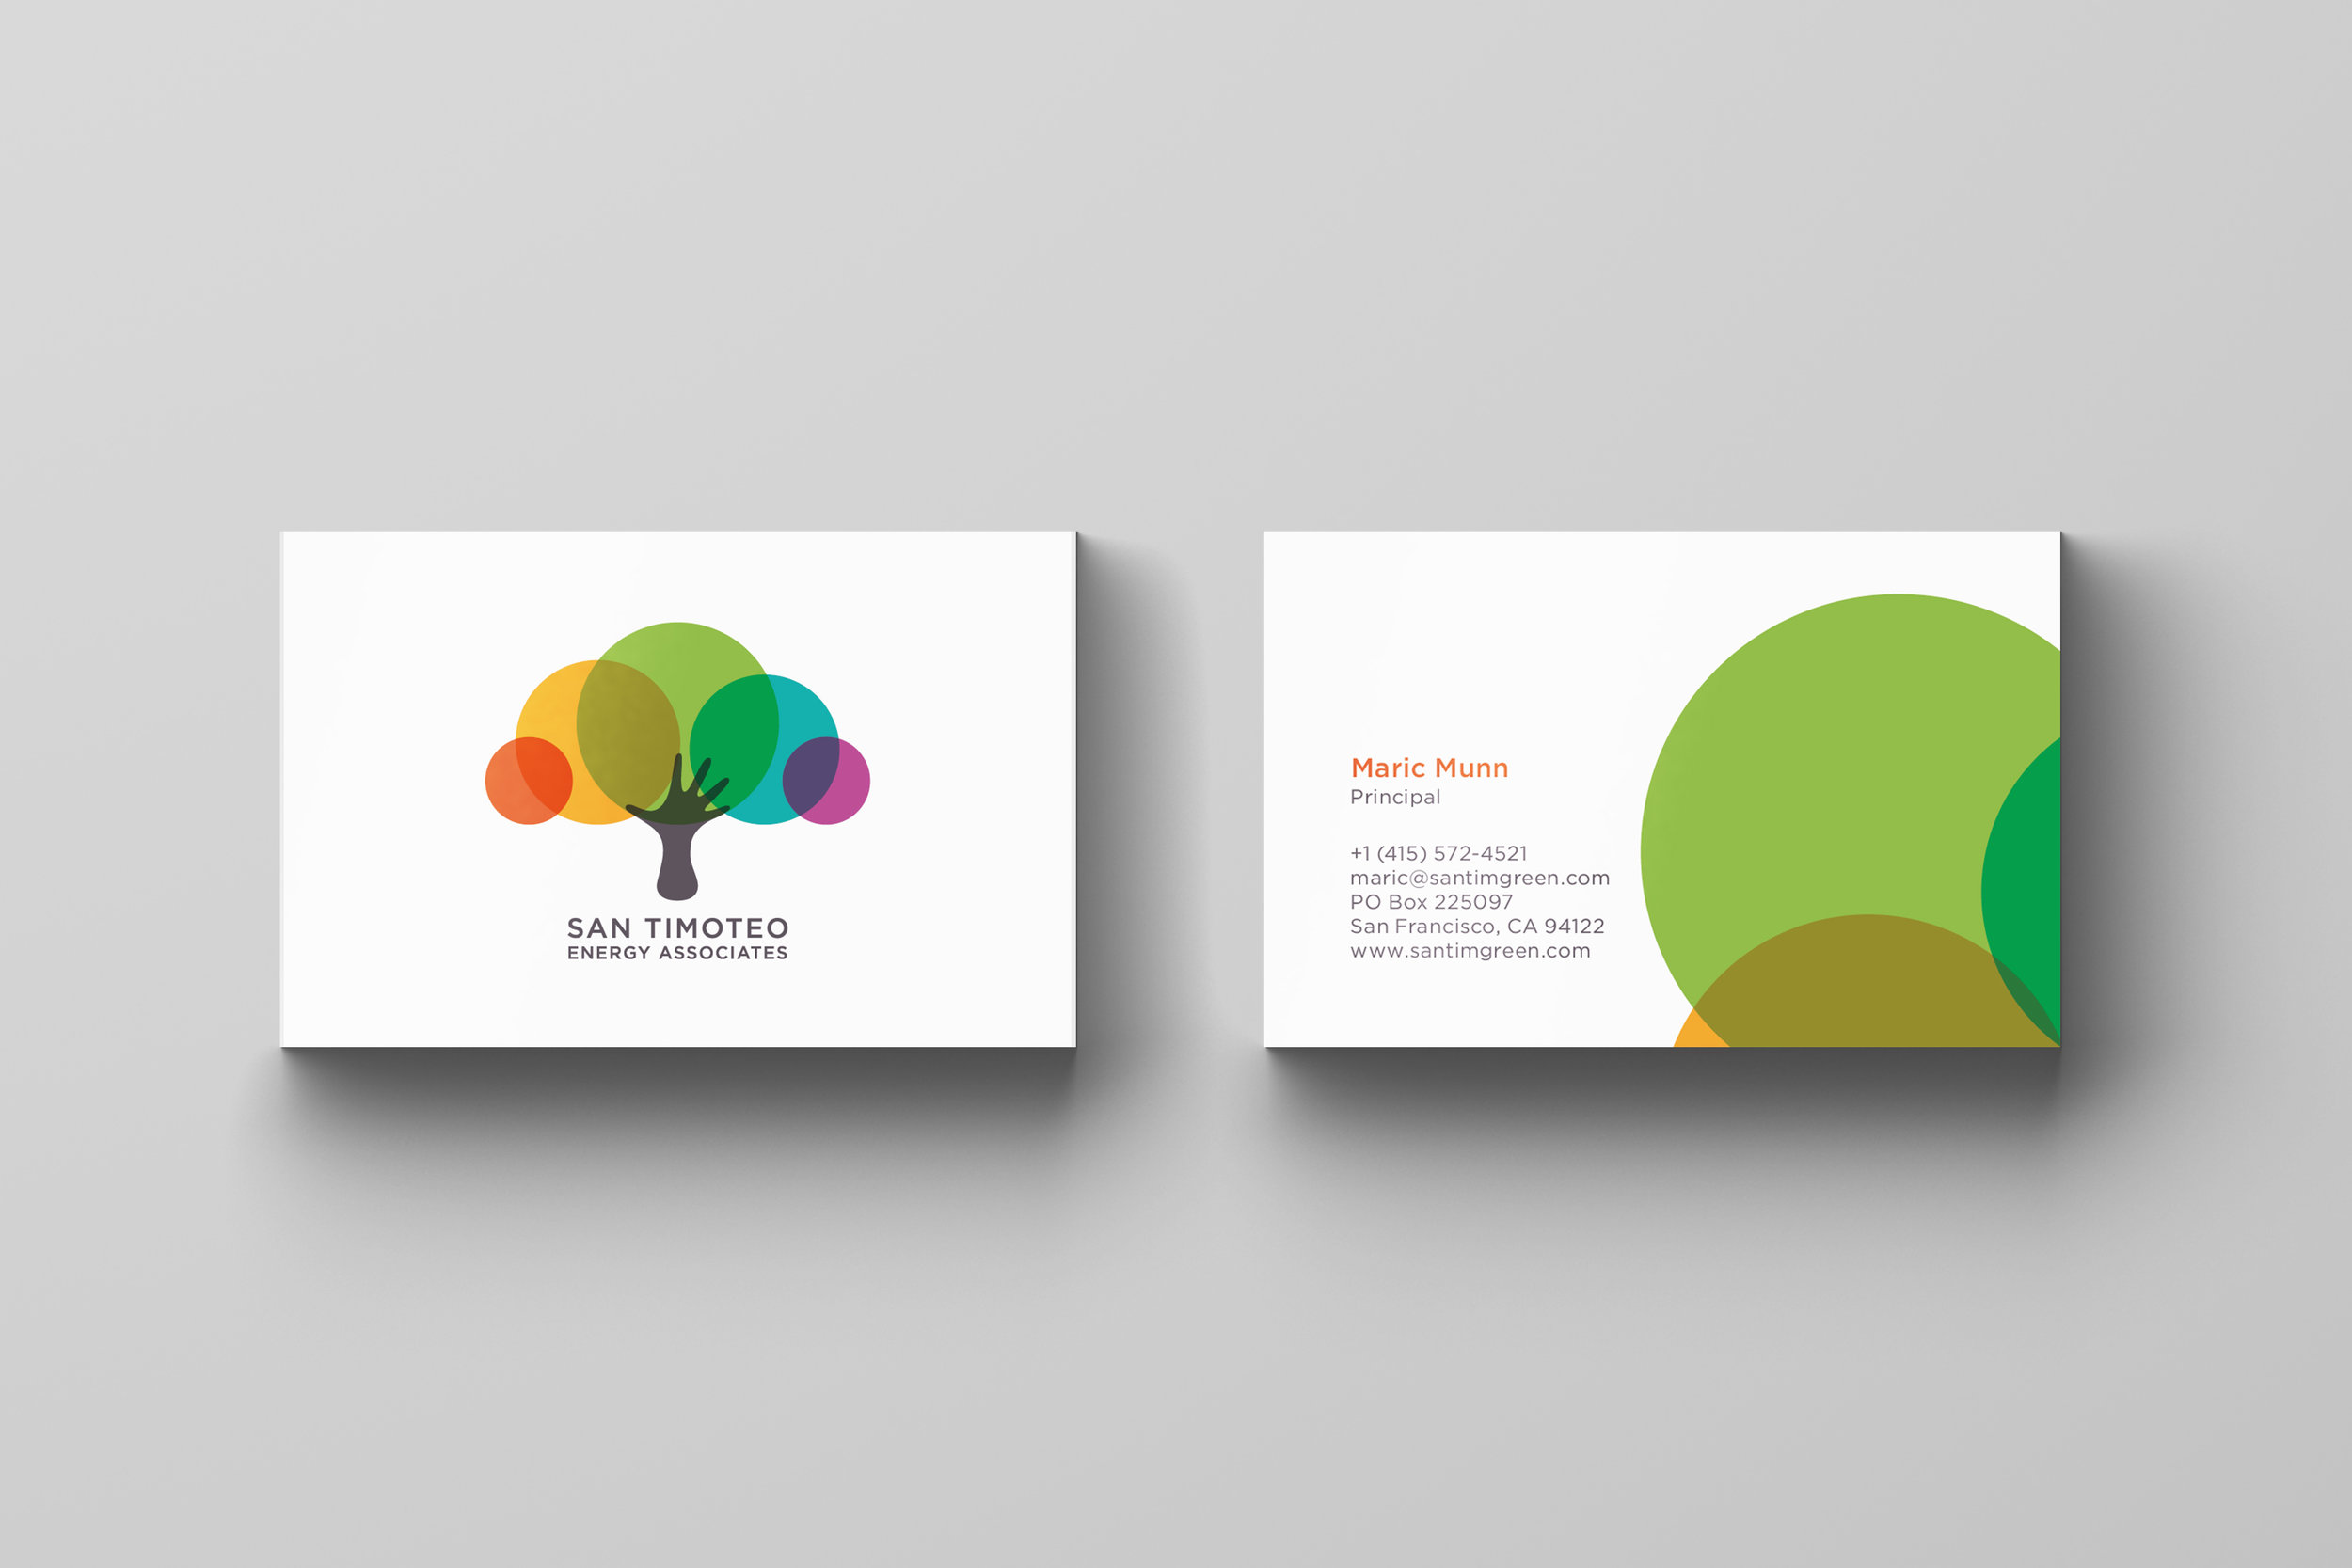 SanT_business-card-mockup_1.jpg